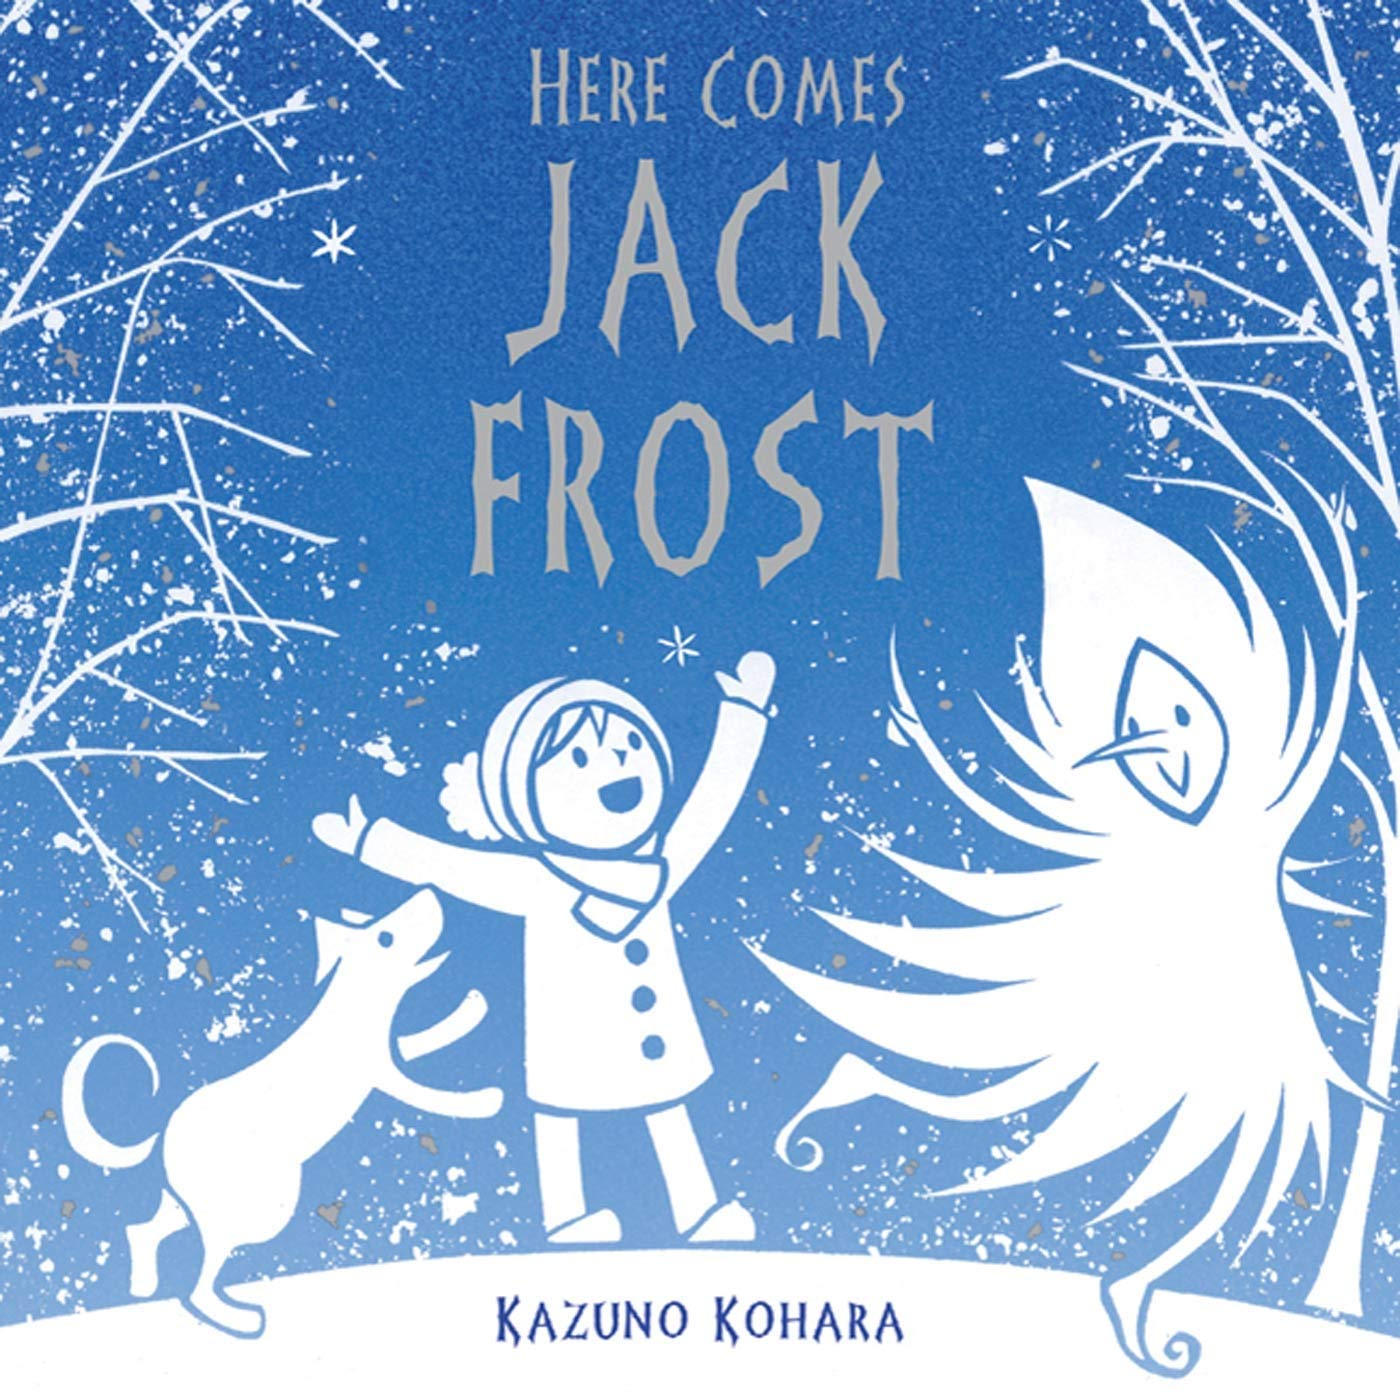 Here Comes Jack Frost by Kazuno Kohara